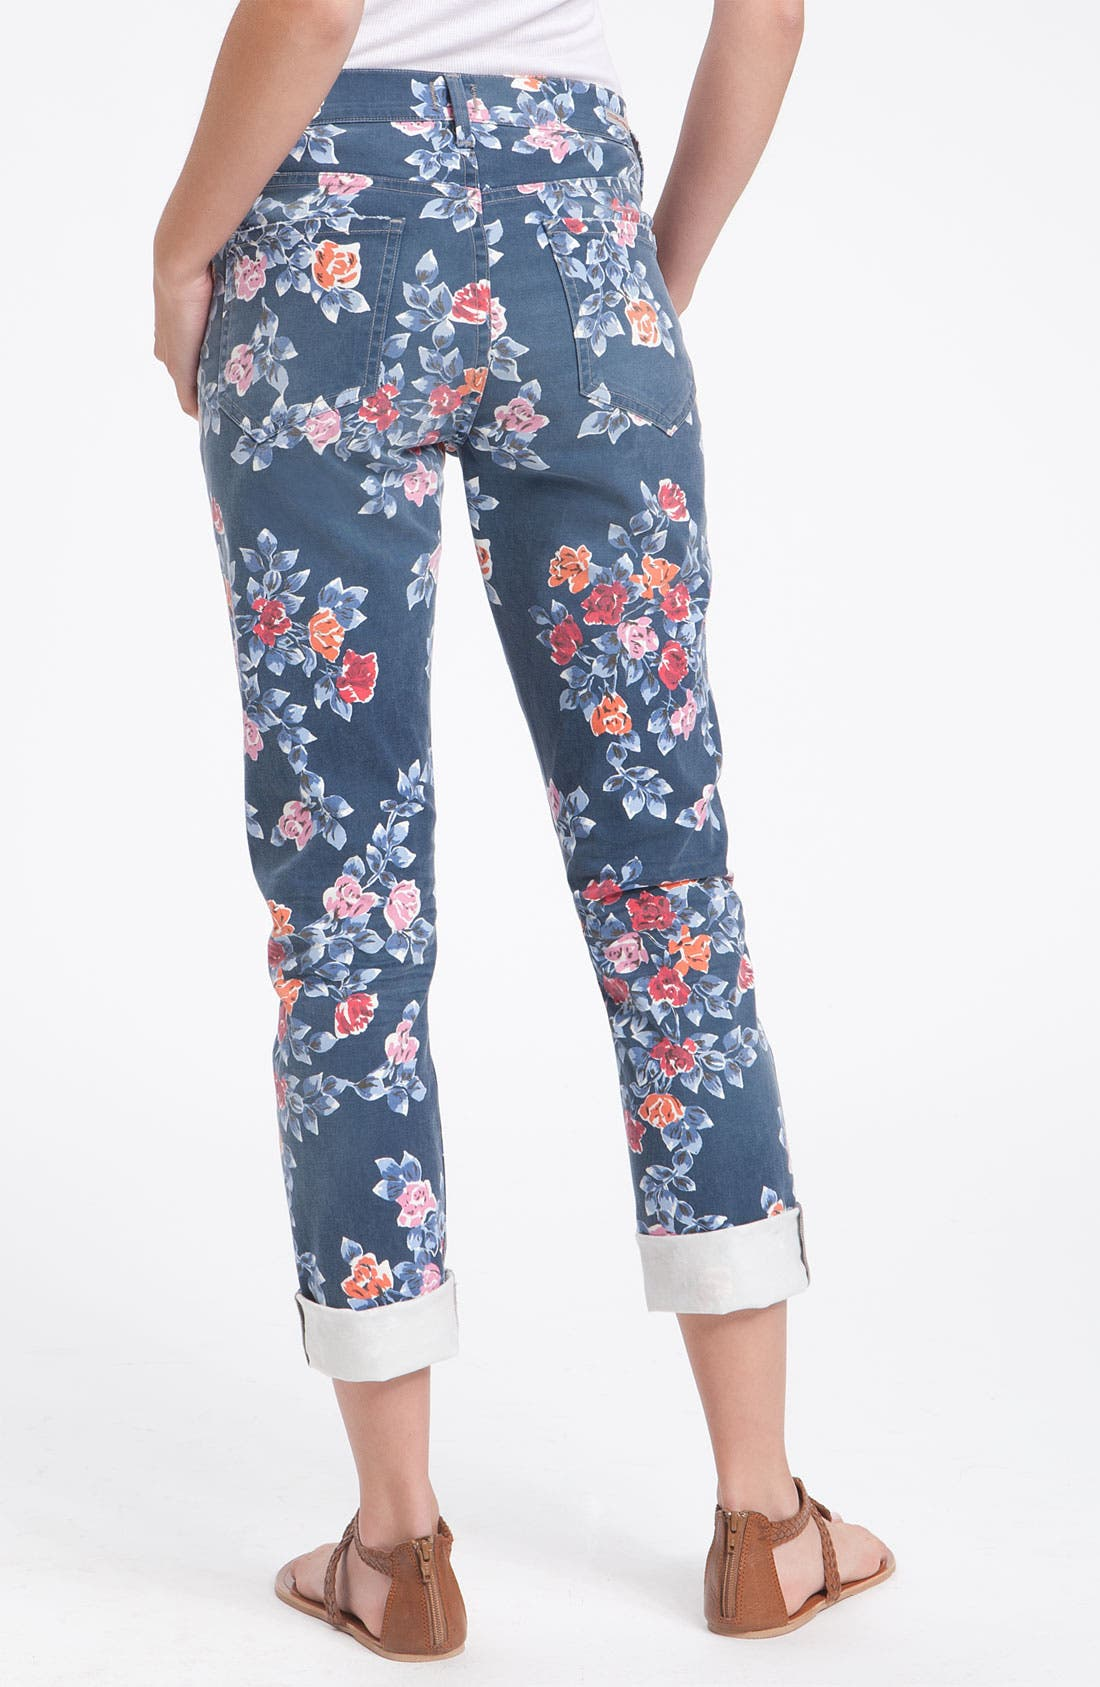 Alternate Image 1 Selected - Citizens of Humanity 'Mandy' High Waist Slim Leg Floral Print Jeans (Navy Petite Rose)